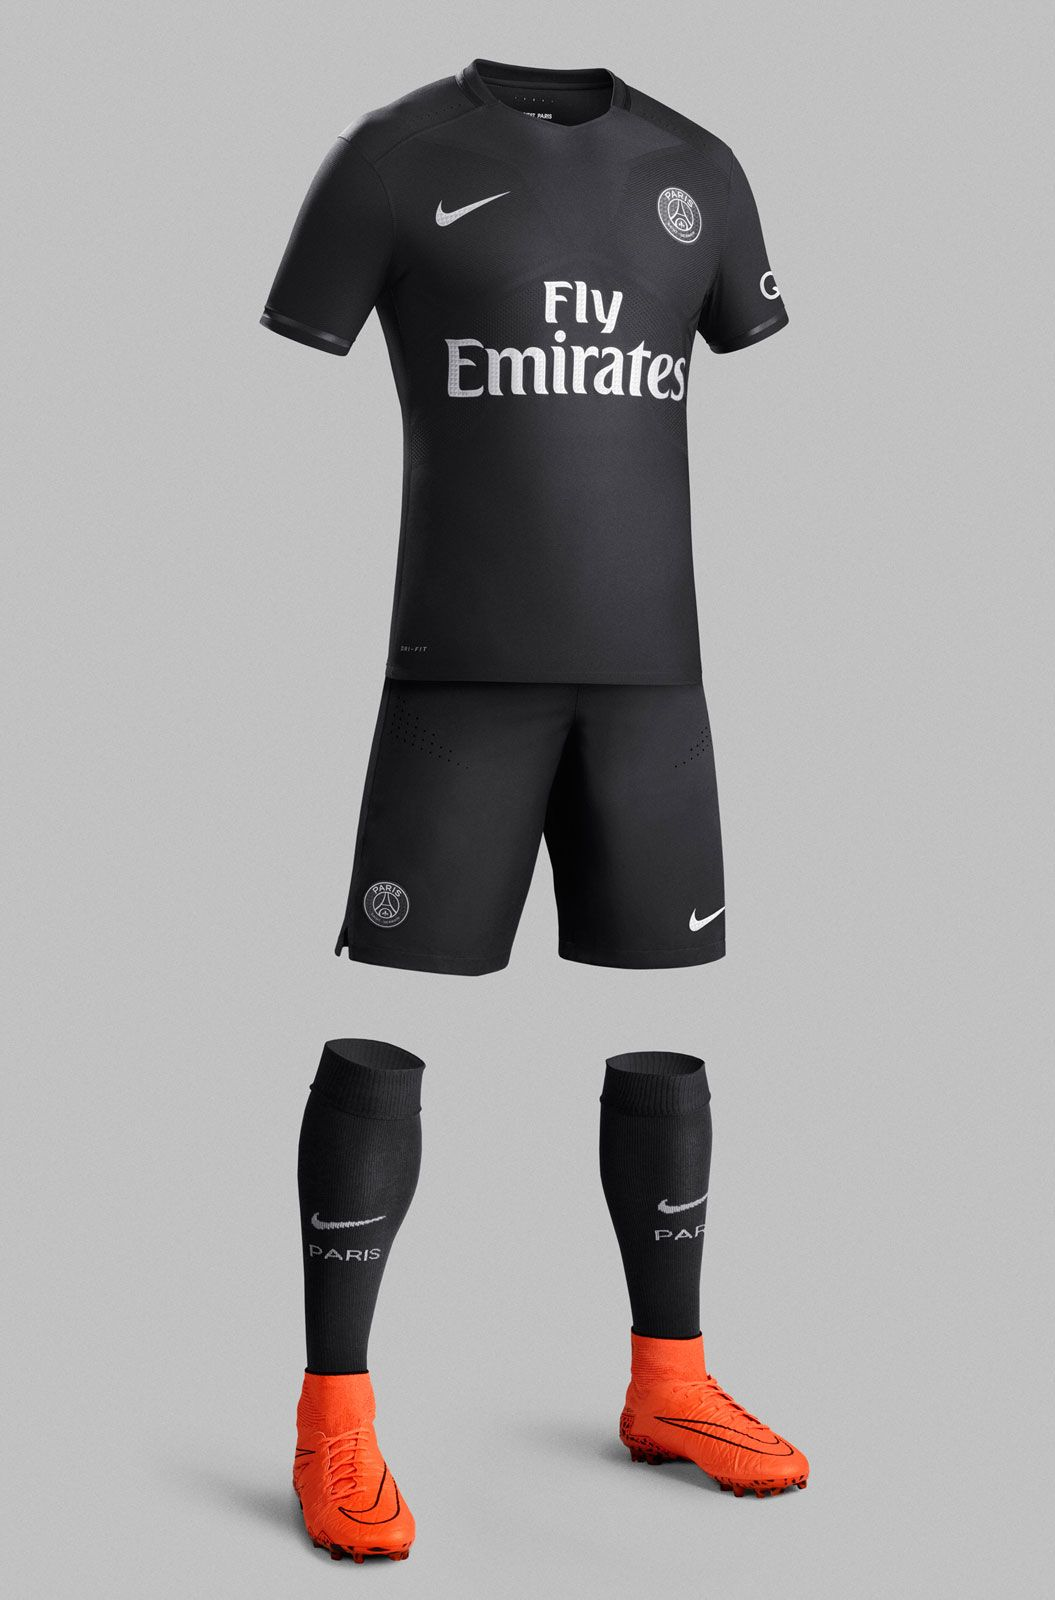 Psg black and pink jersey - Paris Saint Germain 15 16 Champions League Home Kit Released Footy Headlines